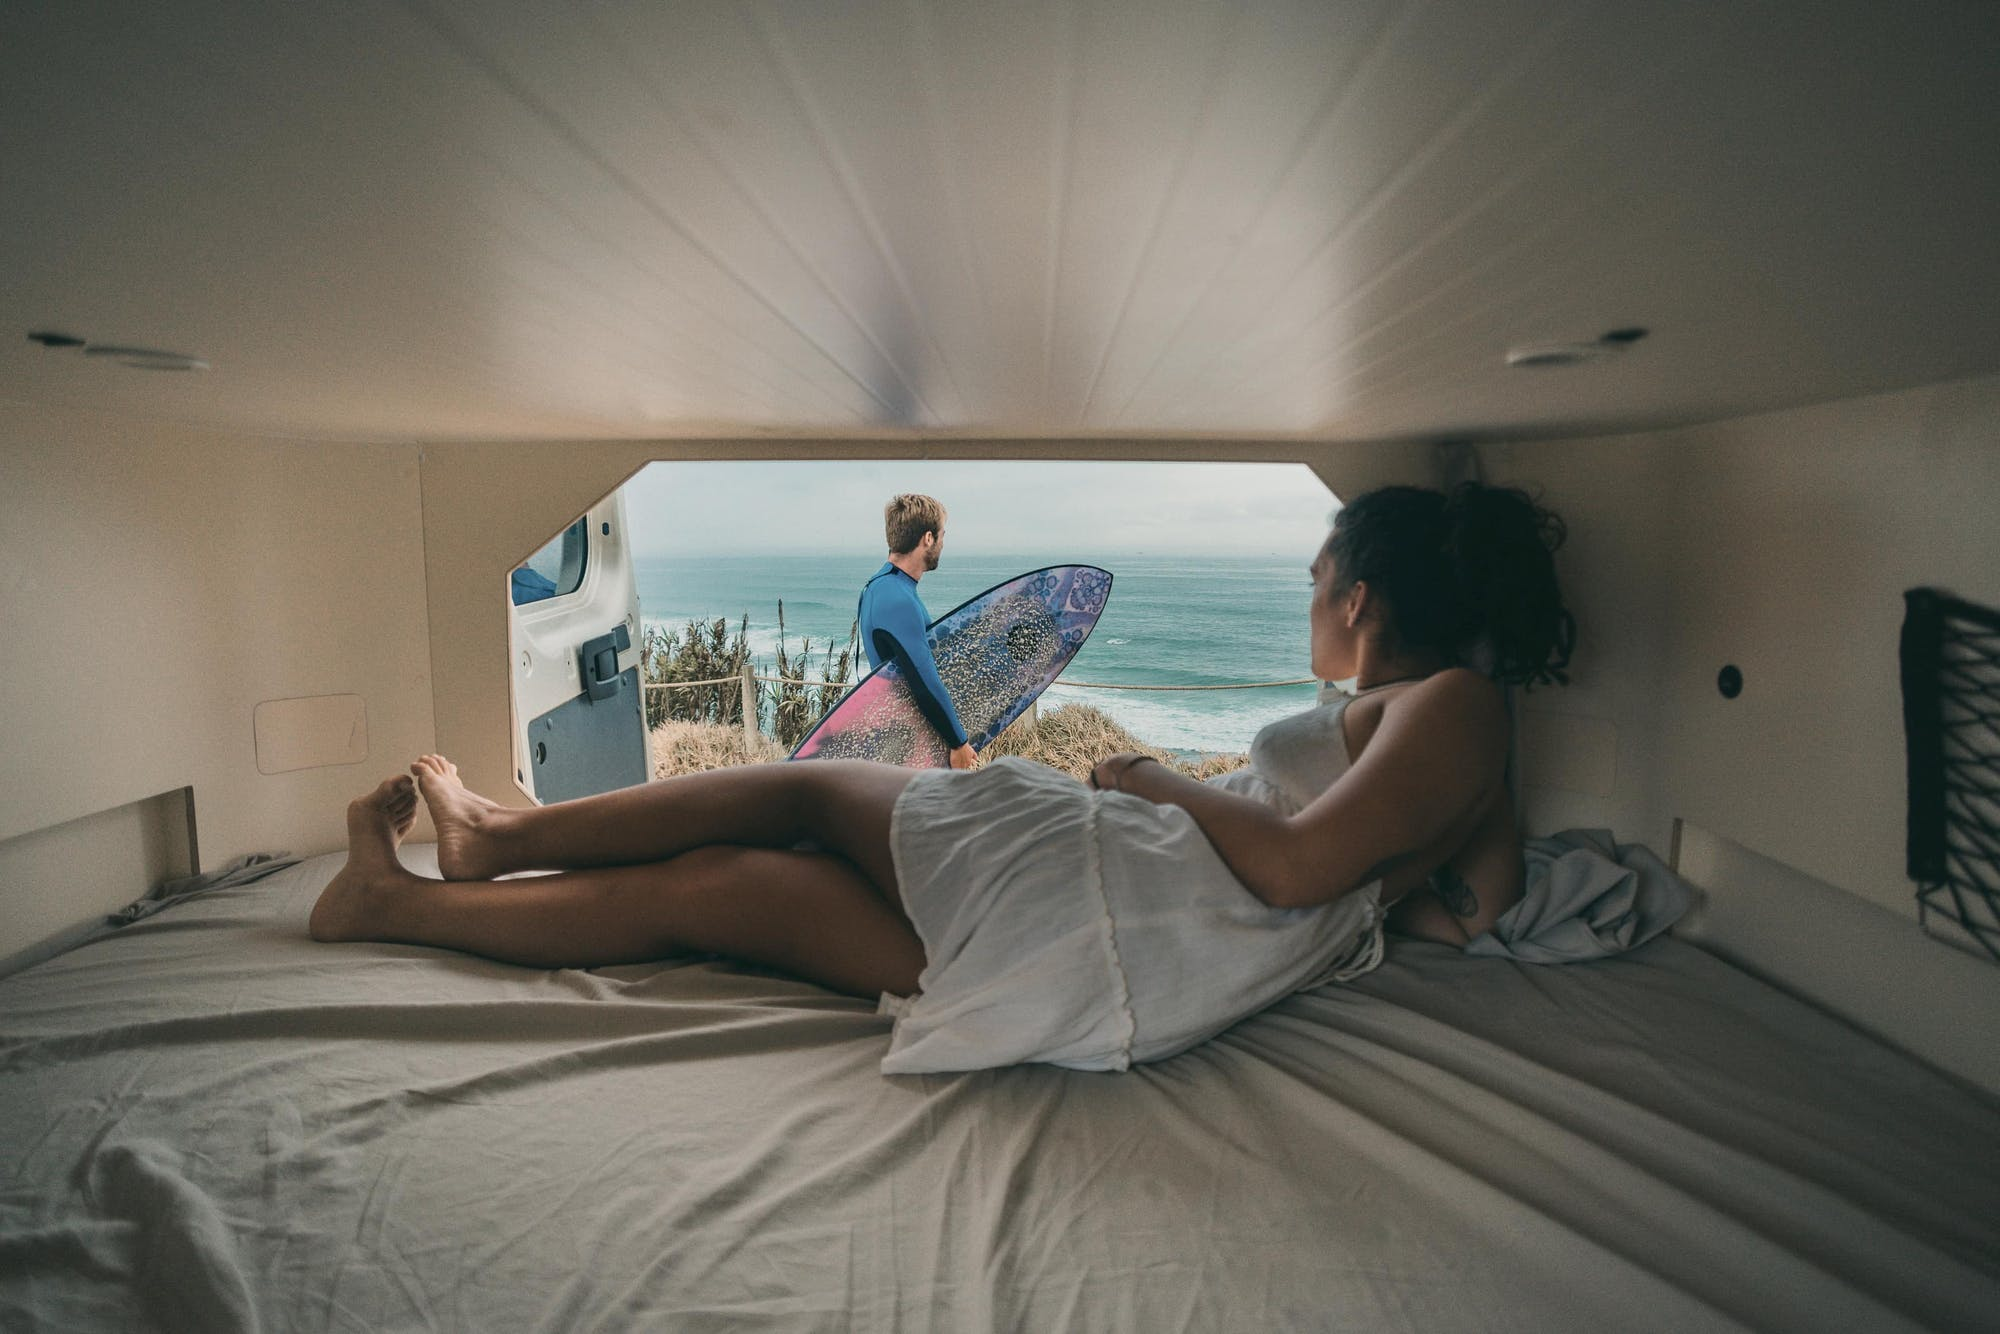 Inside view from the Active Model of a woman and a man with a surfboard